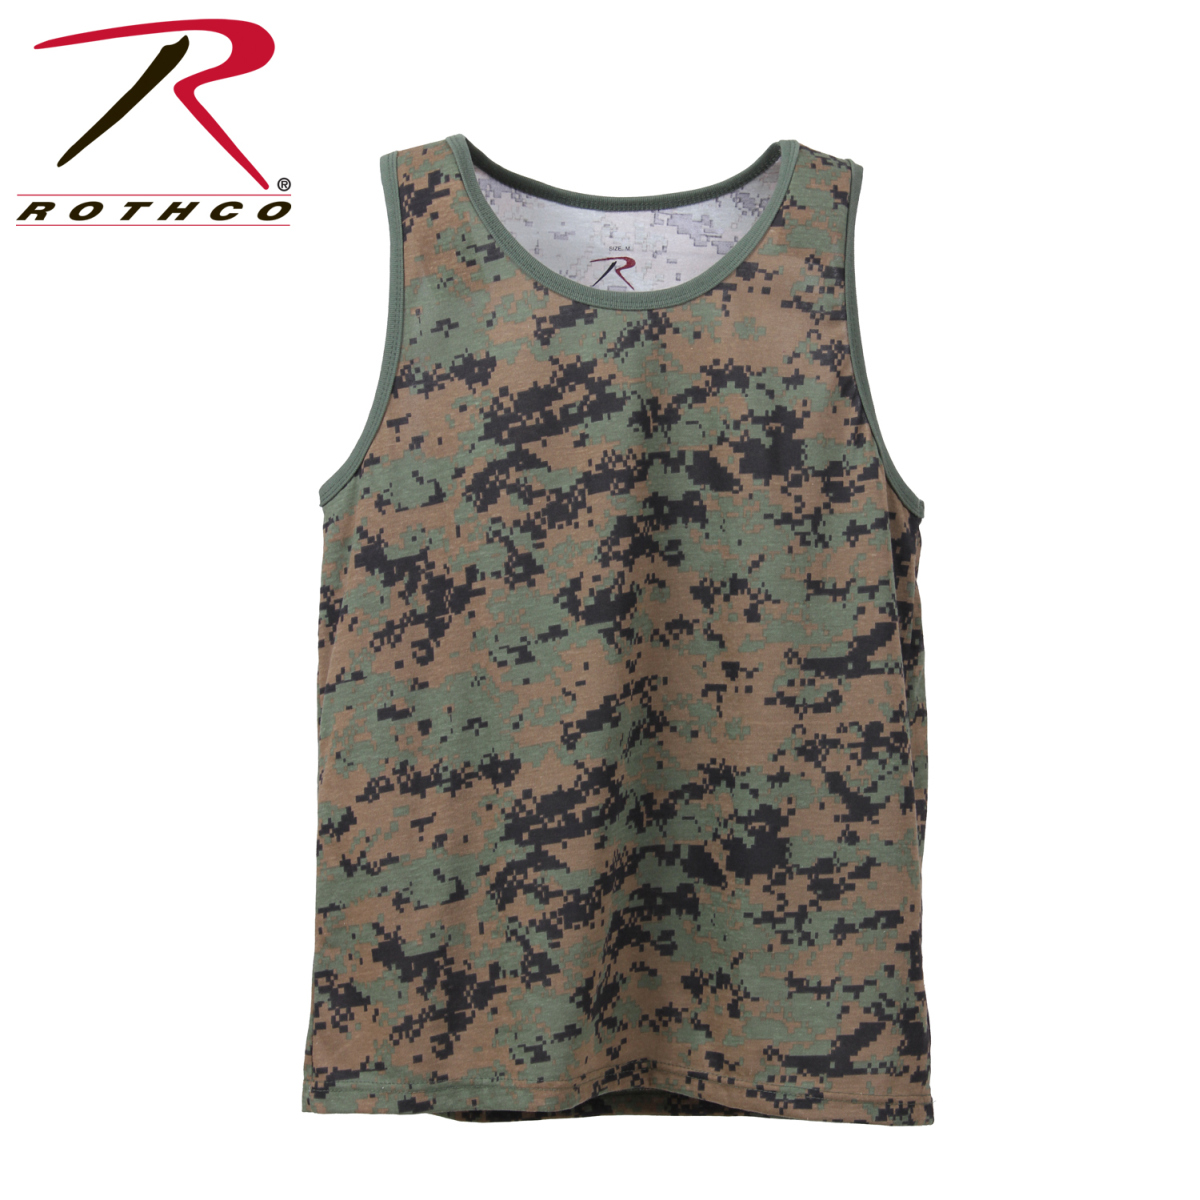 343323c0e9 Buy Rothco Camo Tank Top - Rothco Online at Best price - PA